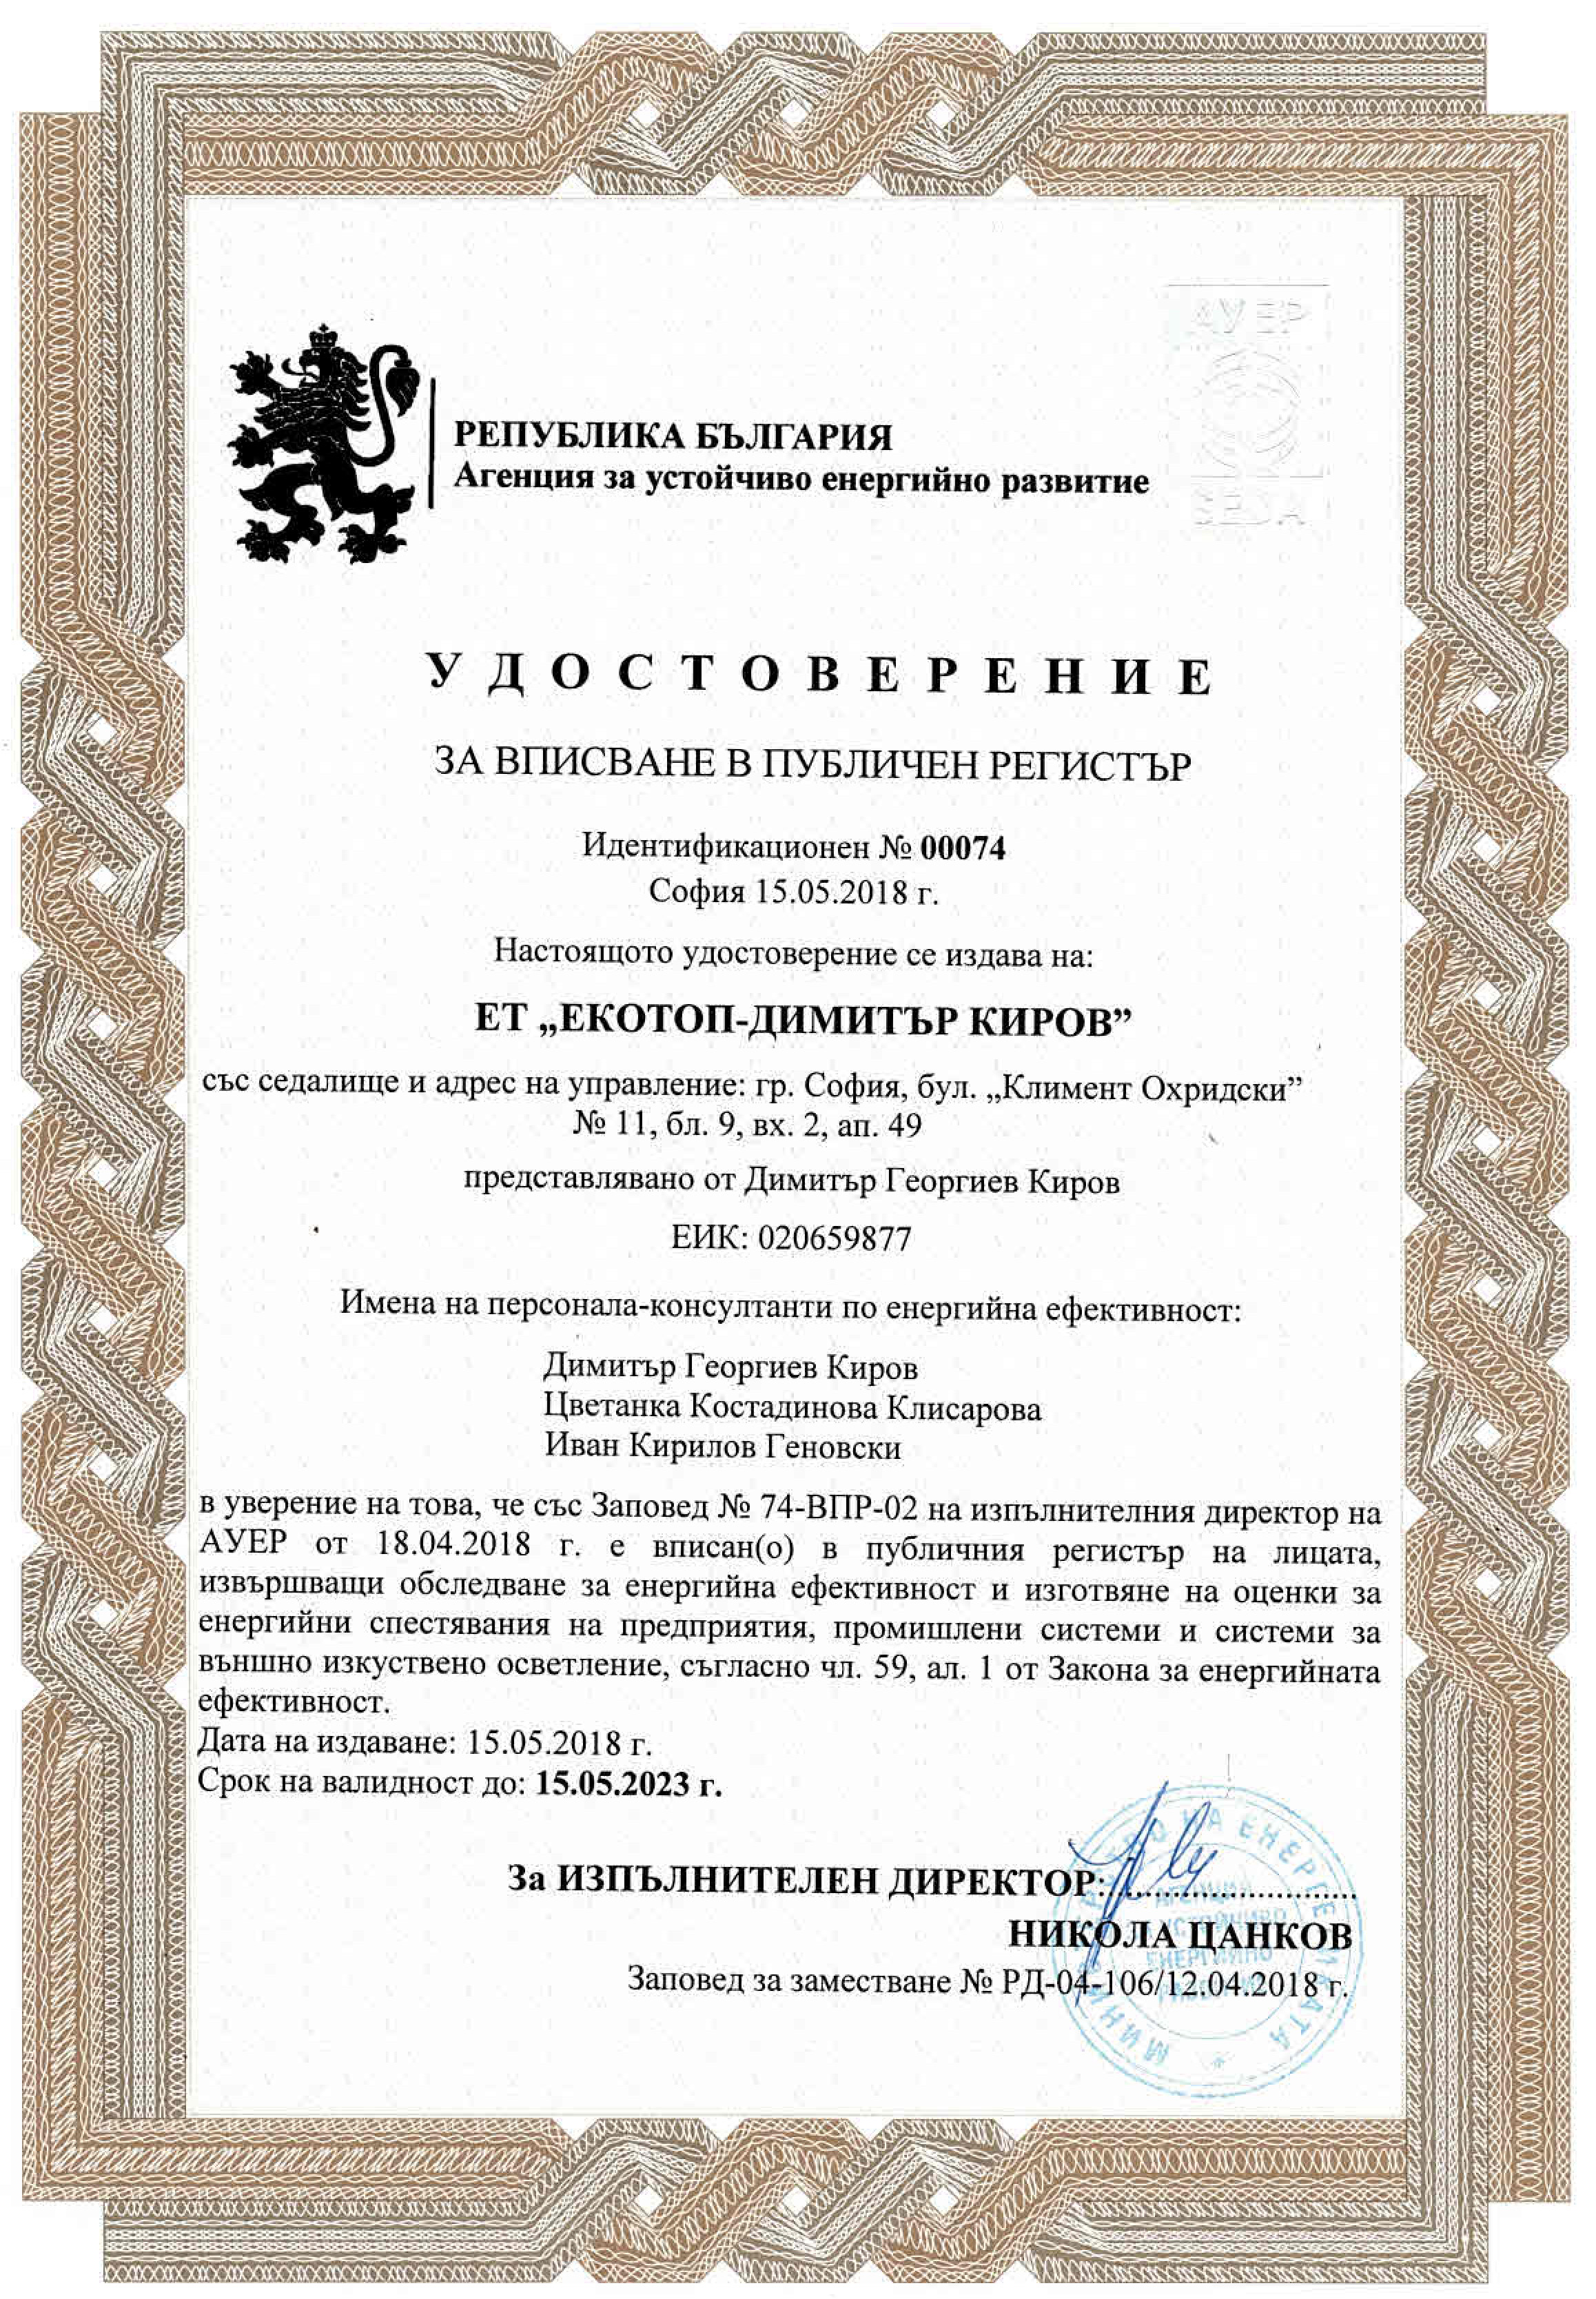 Entry certificate 00074